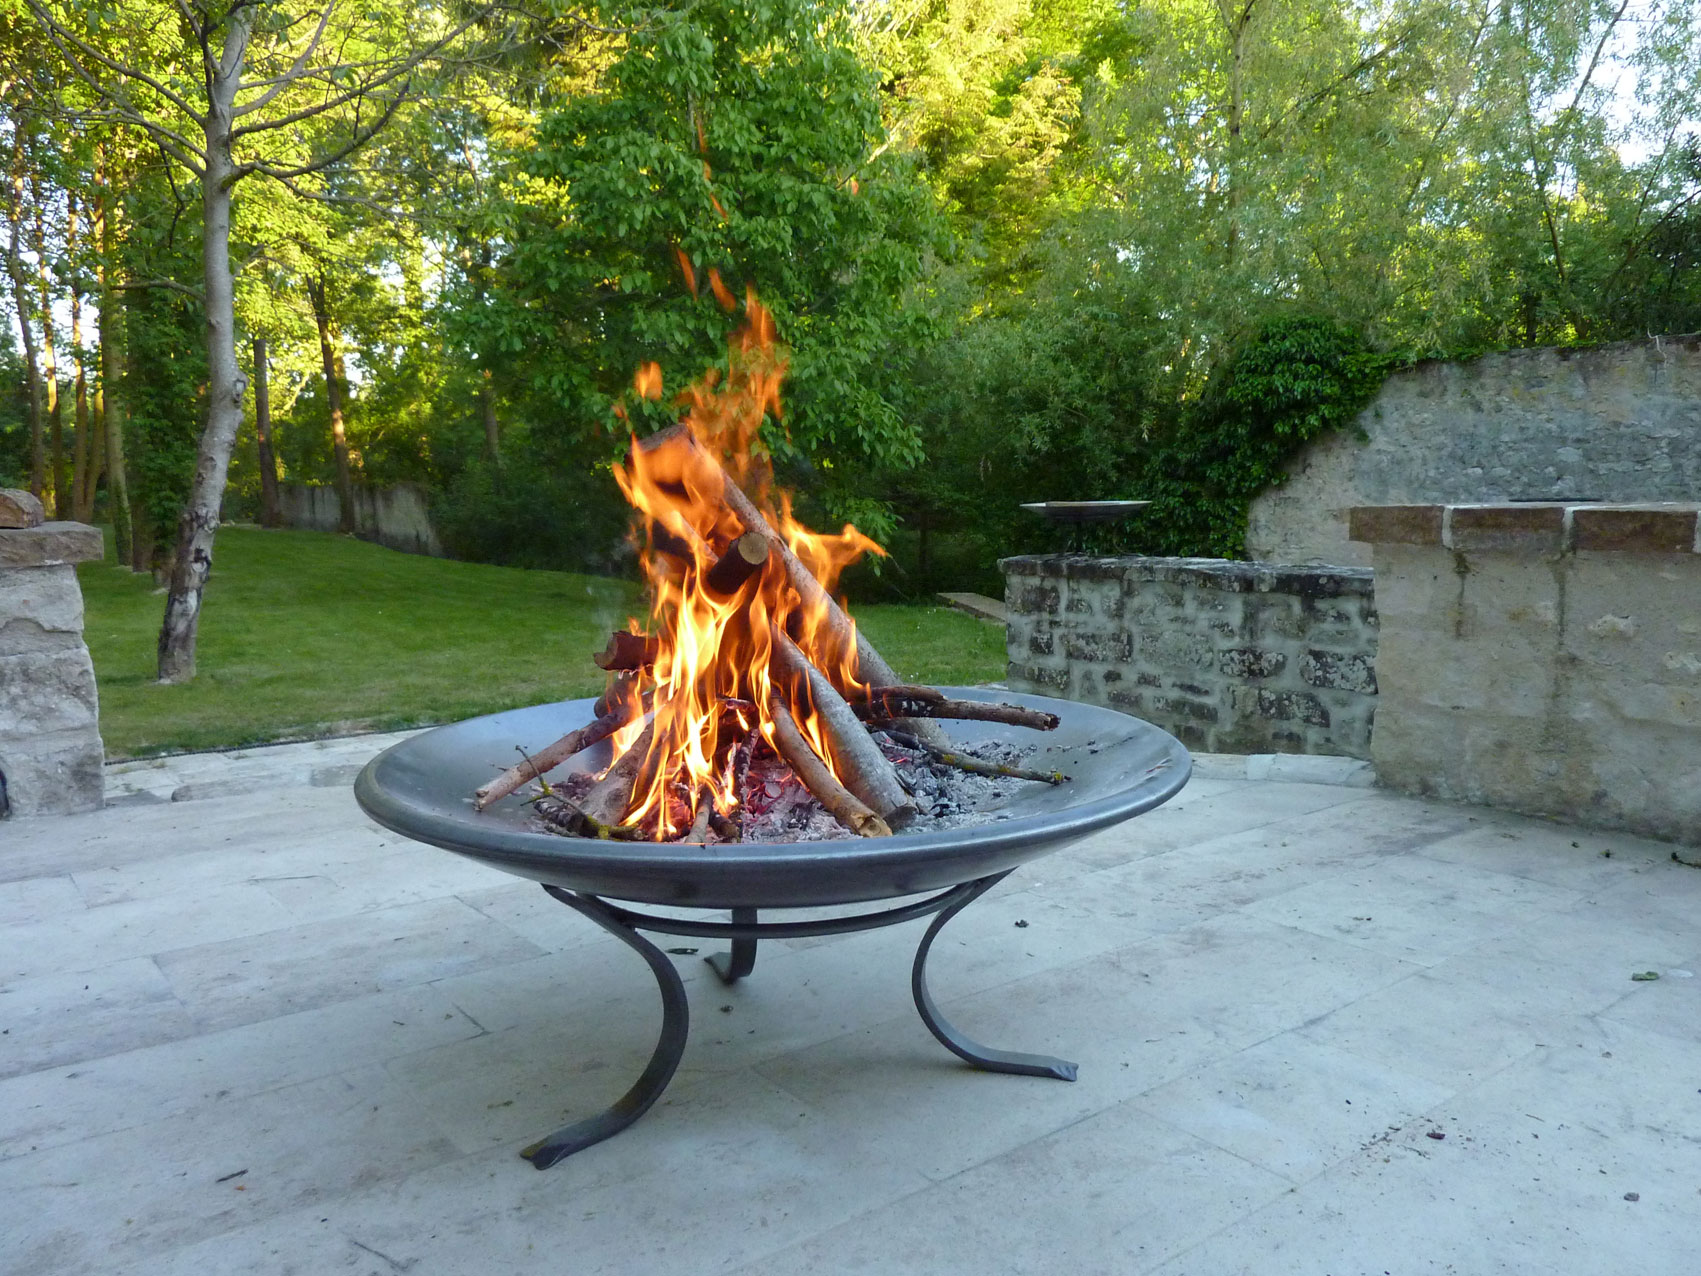 Fire bowl coupe feu lounge brasero dit gai de grez for Brasero de jardin